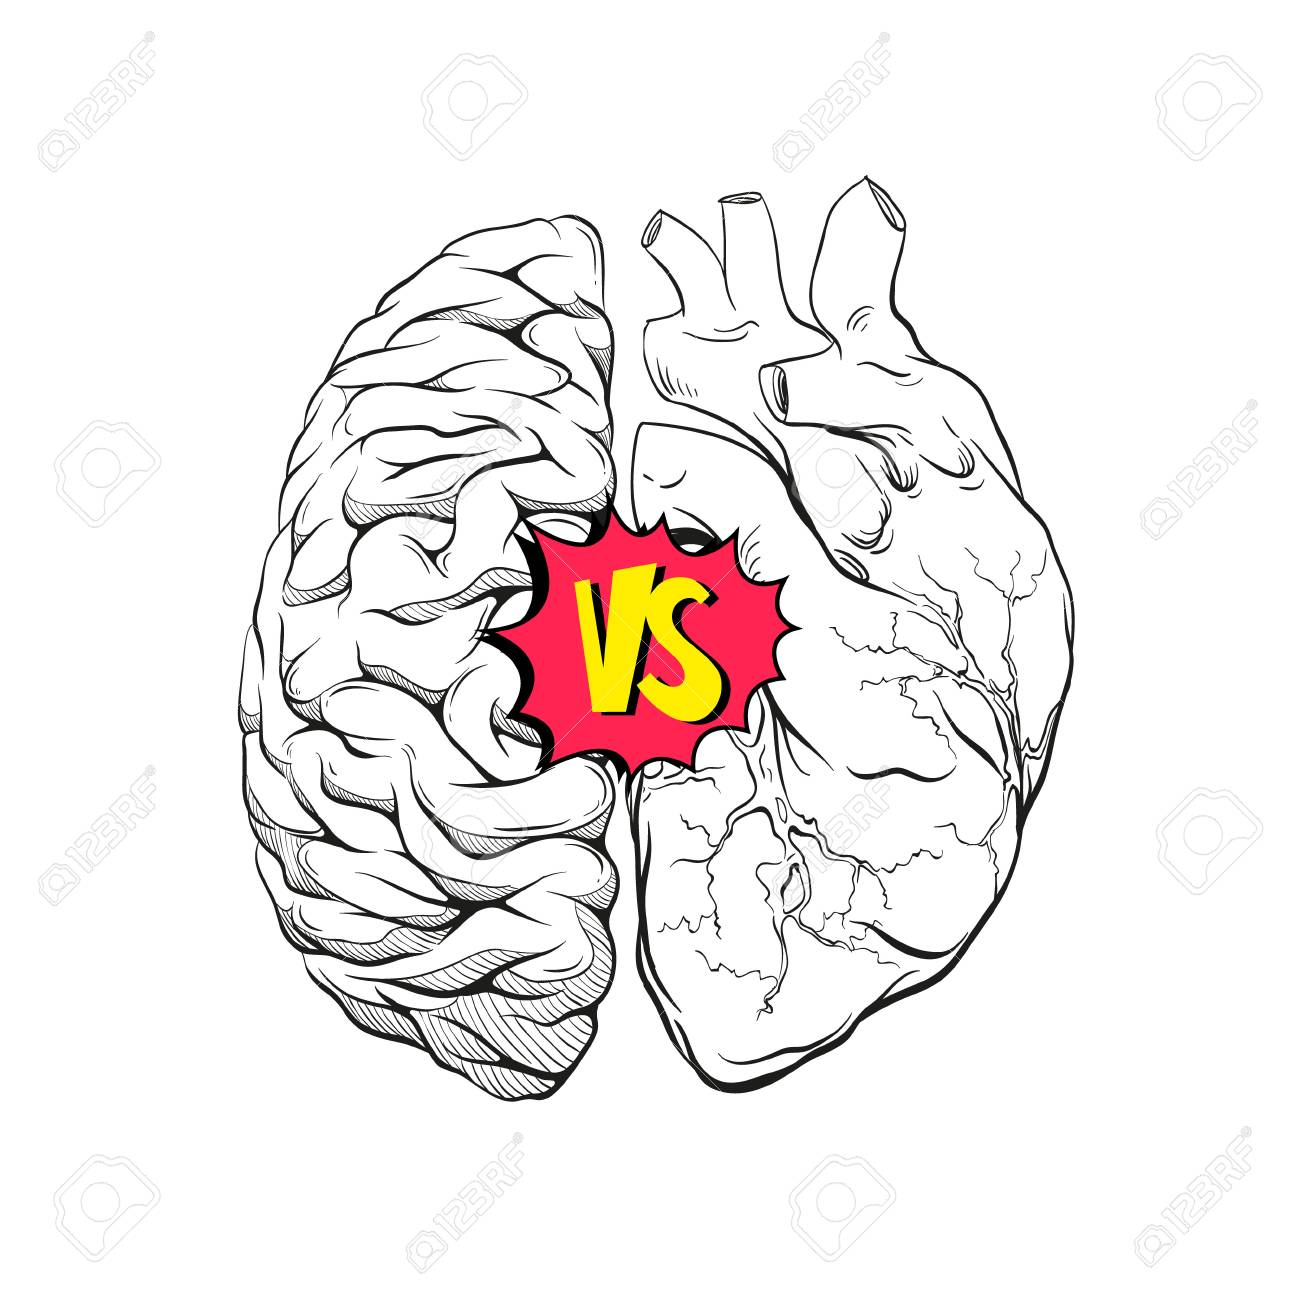 Versus Letters Human Brain Right And Left Hemisphere And Heart